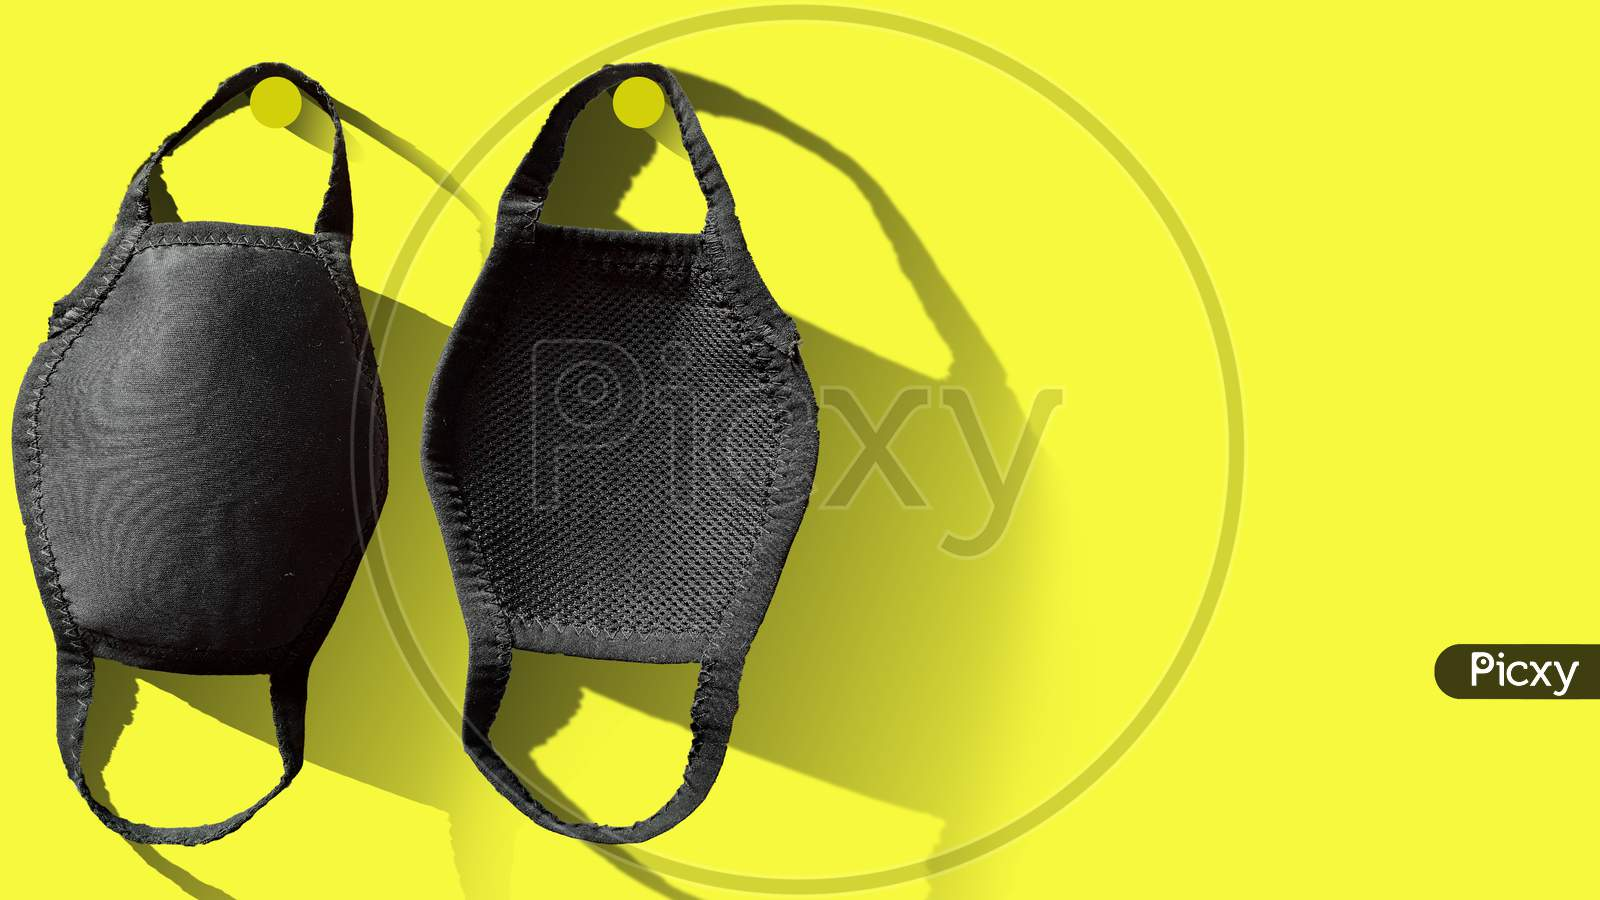 Black sanitized mask to be safe from COVID-19 or Corona Virus